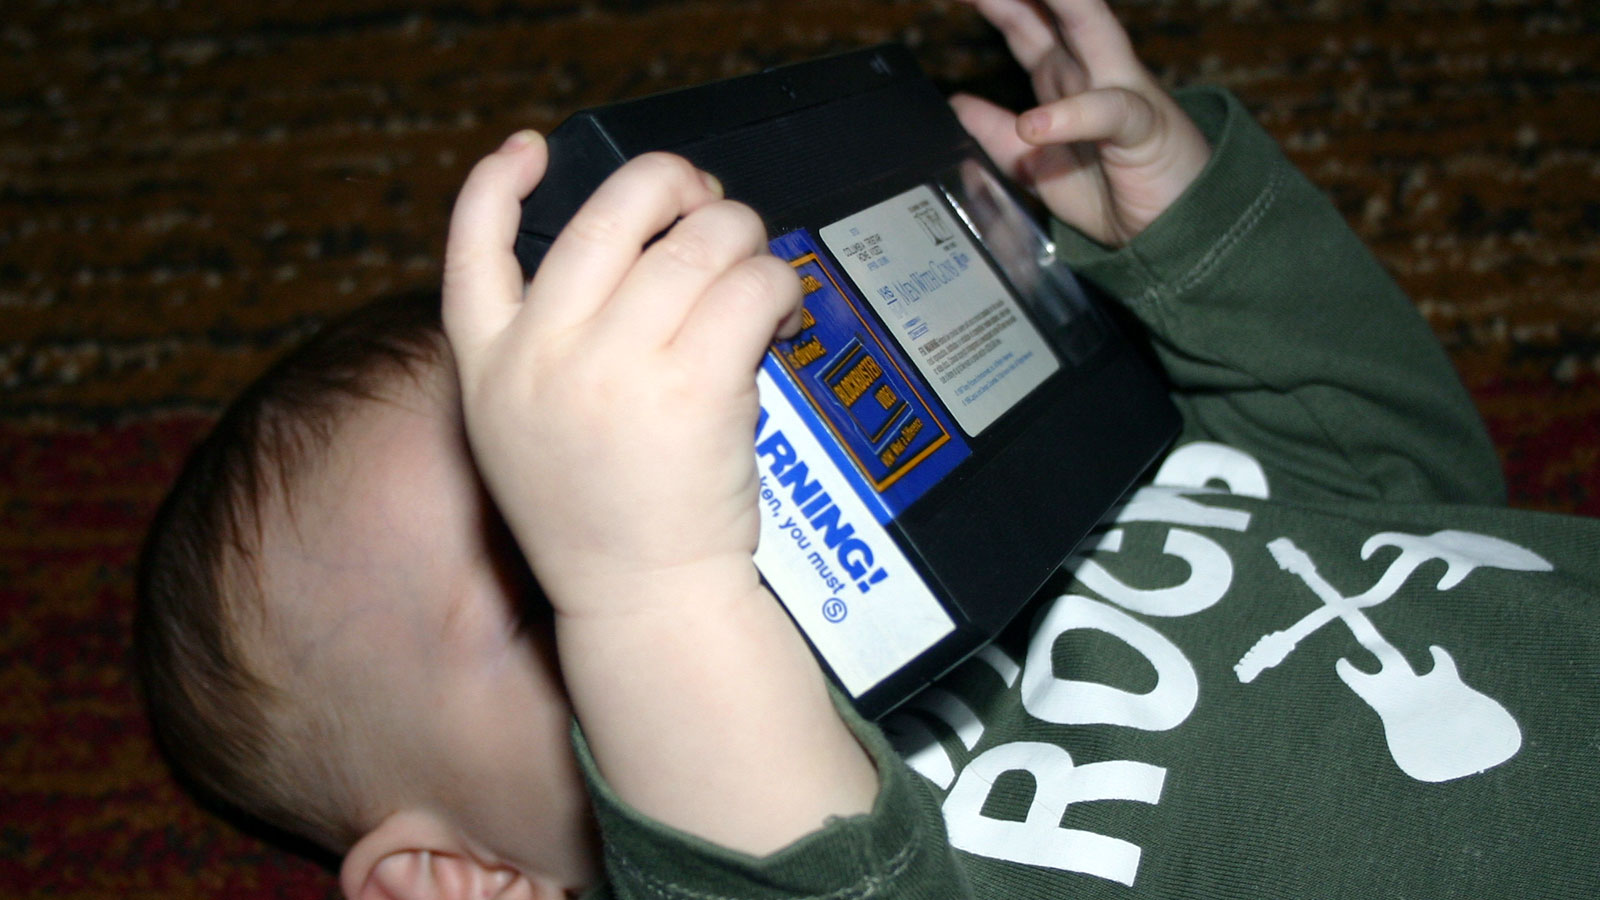 Today's Kids Don't Have to be Kind and Rewind